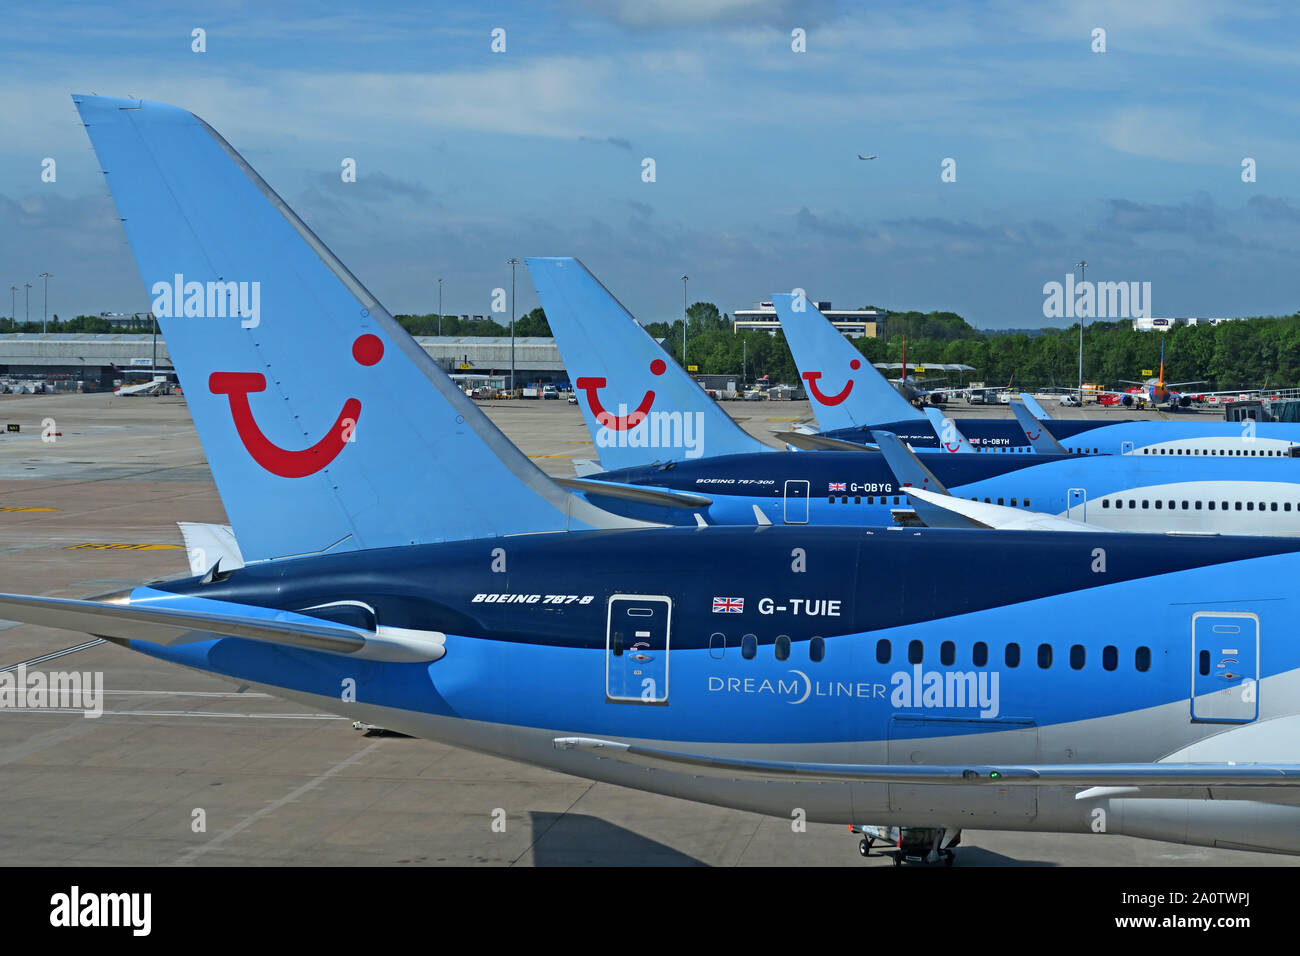 GoTonySmith,HotpixUK,@HotpixUK,MAN,MAG,apron,planes,jet,Boeing,Airbus,taxi,taxing,Ringway,UK,England,North West,TUI Aircraft,TUI Plane,TUIFly,TUI AG,tourism,charter,holiday,parked planes,Thomson Travel,Thomson,Hannover,family holidays,disruption,strike,Three aircraft,787-8 G-TUIE Dreamliner,Boeing 787-8,G-TUIE Dreamliner,Dreamliner,G-OBYG,G-OBYH,TUI Airways,Thomson Airways,Thomsonfly